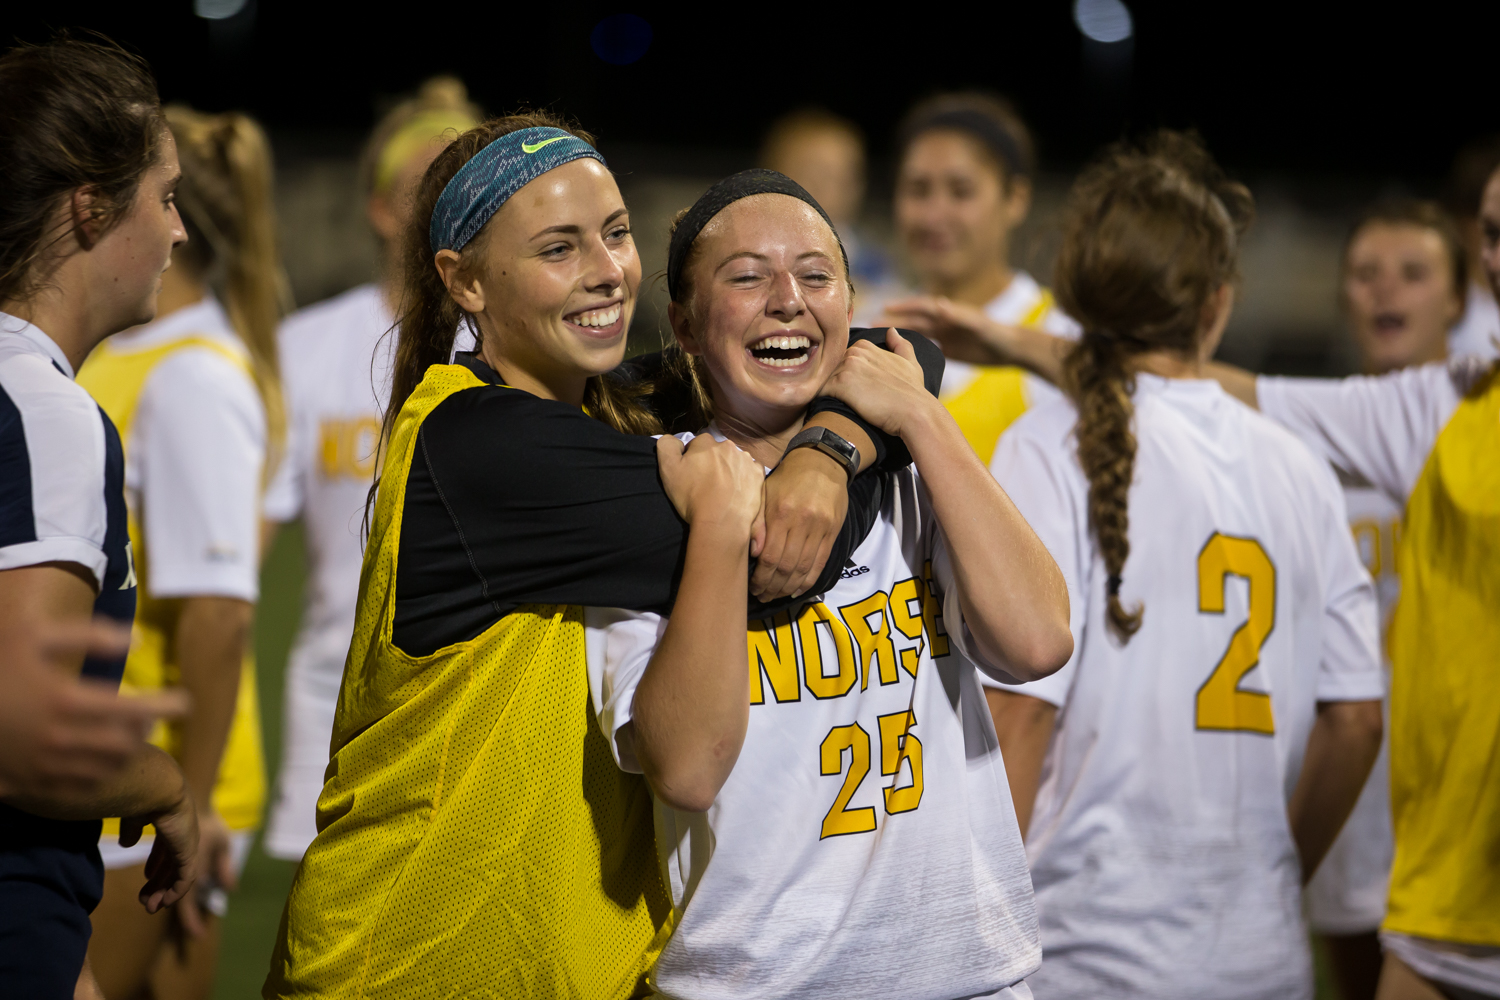 Payton Naylor (25) is embraced by teammate Emily Soltes (7) after scoring the winning goal in the 1-0 victory over Xavier.